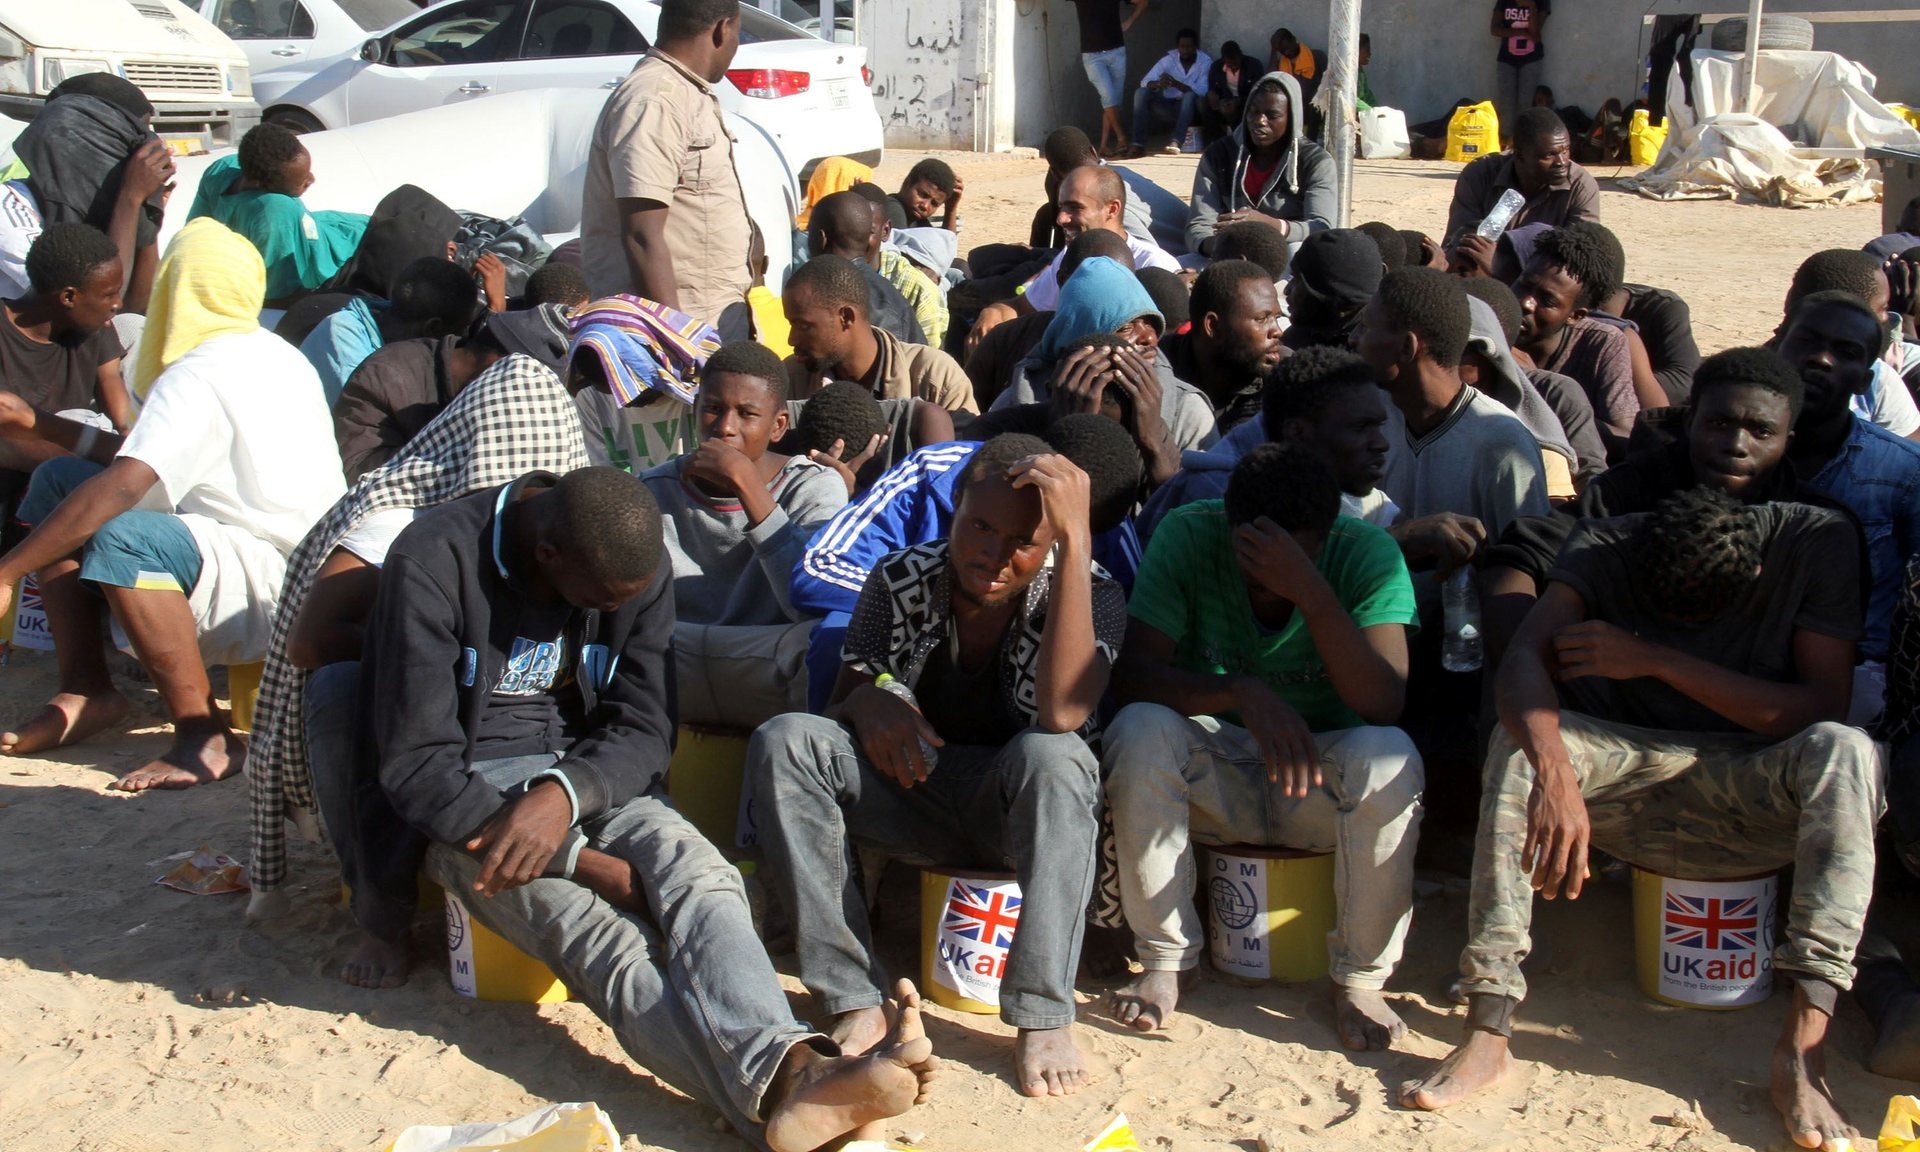 Illegal migrants in a port east of the Libyan capital, Tripoli. Hulme argues that 'any serious attempt to reduce the flow of Africans crossing the Mediterranean … entails rich nations actively promoting economic growth and job creation in Africa'. Photograph: AFP/Getty